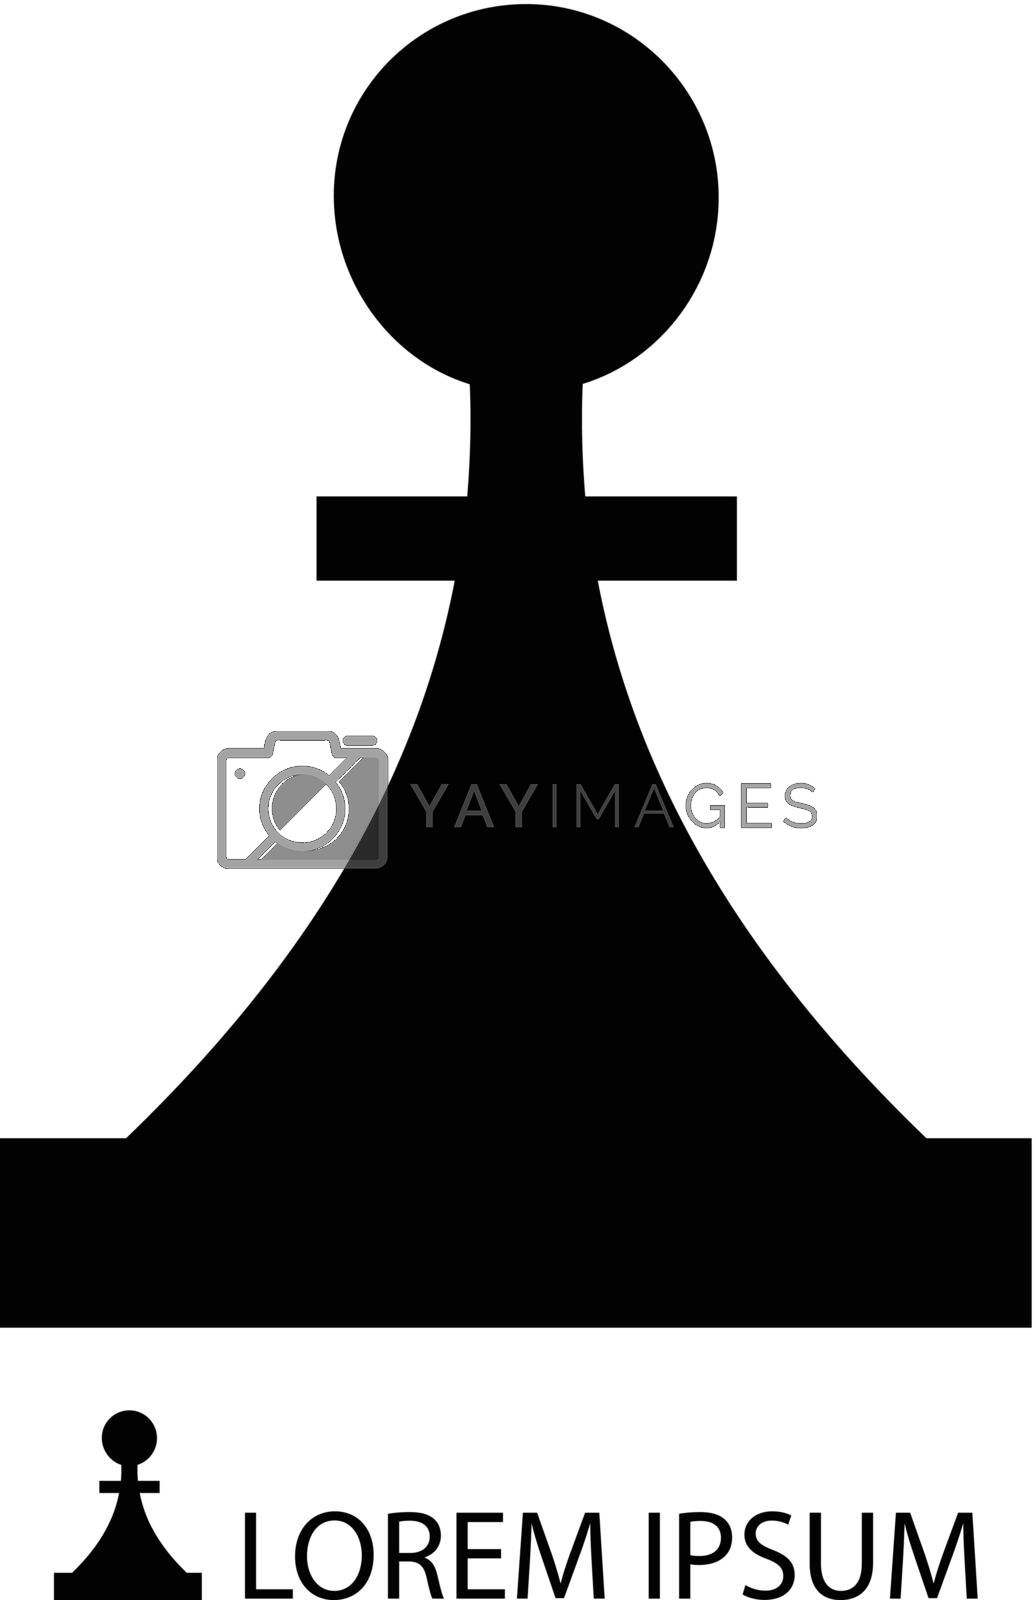 Black piece as logo on white background. Strategy and logic